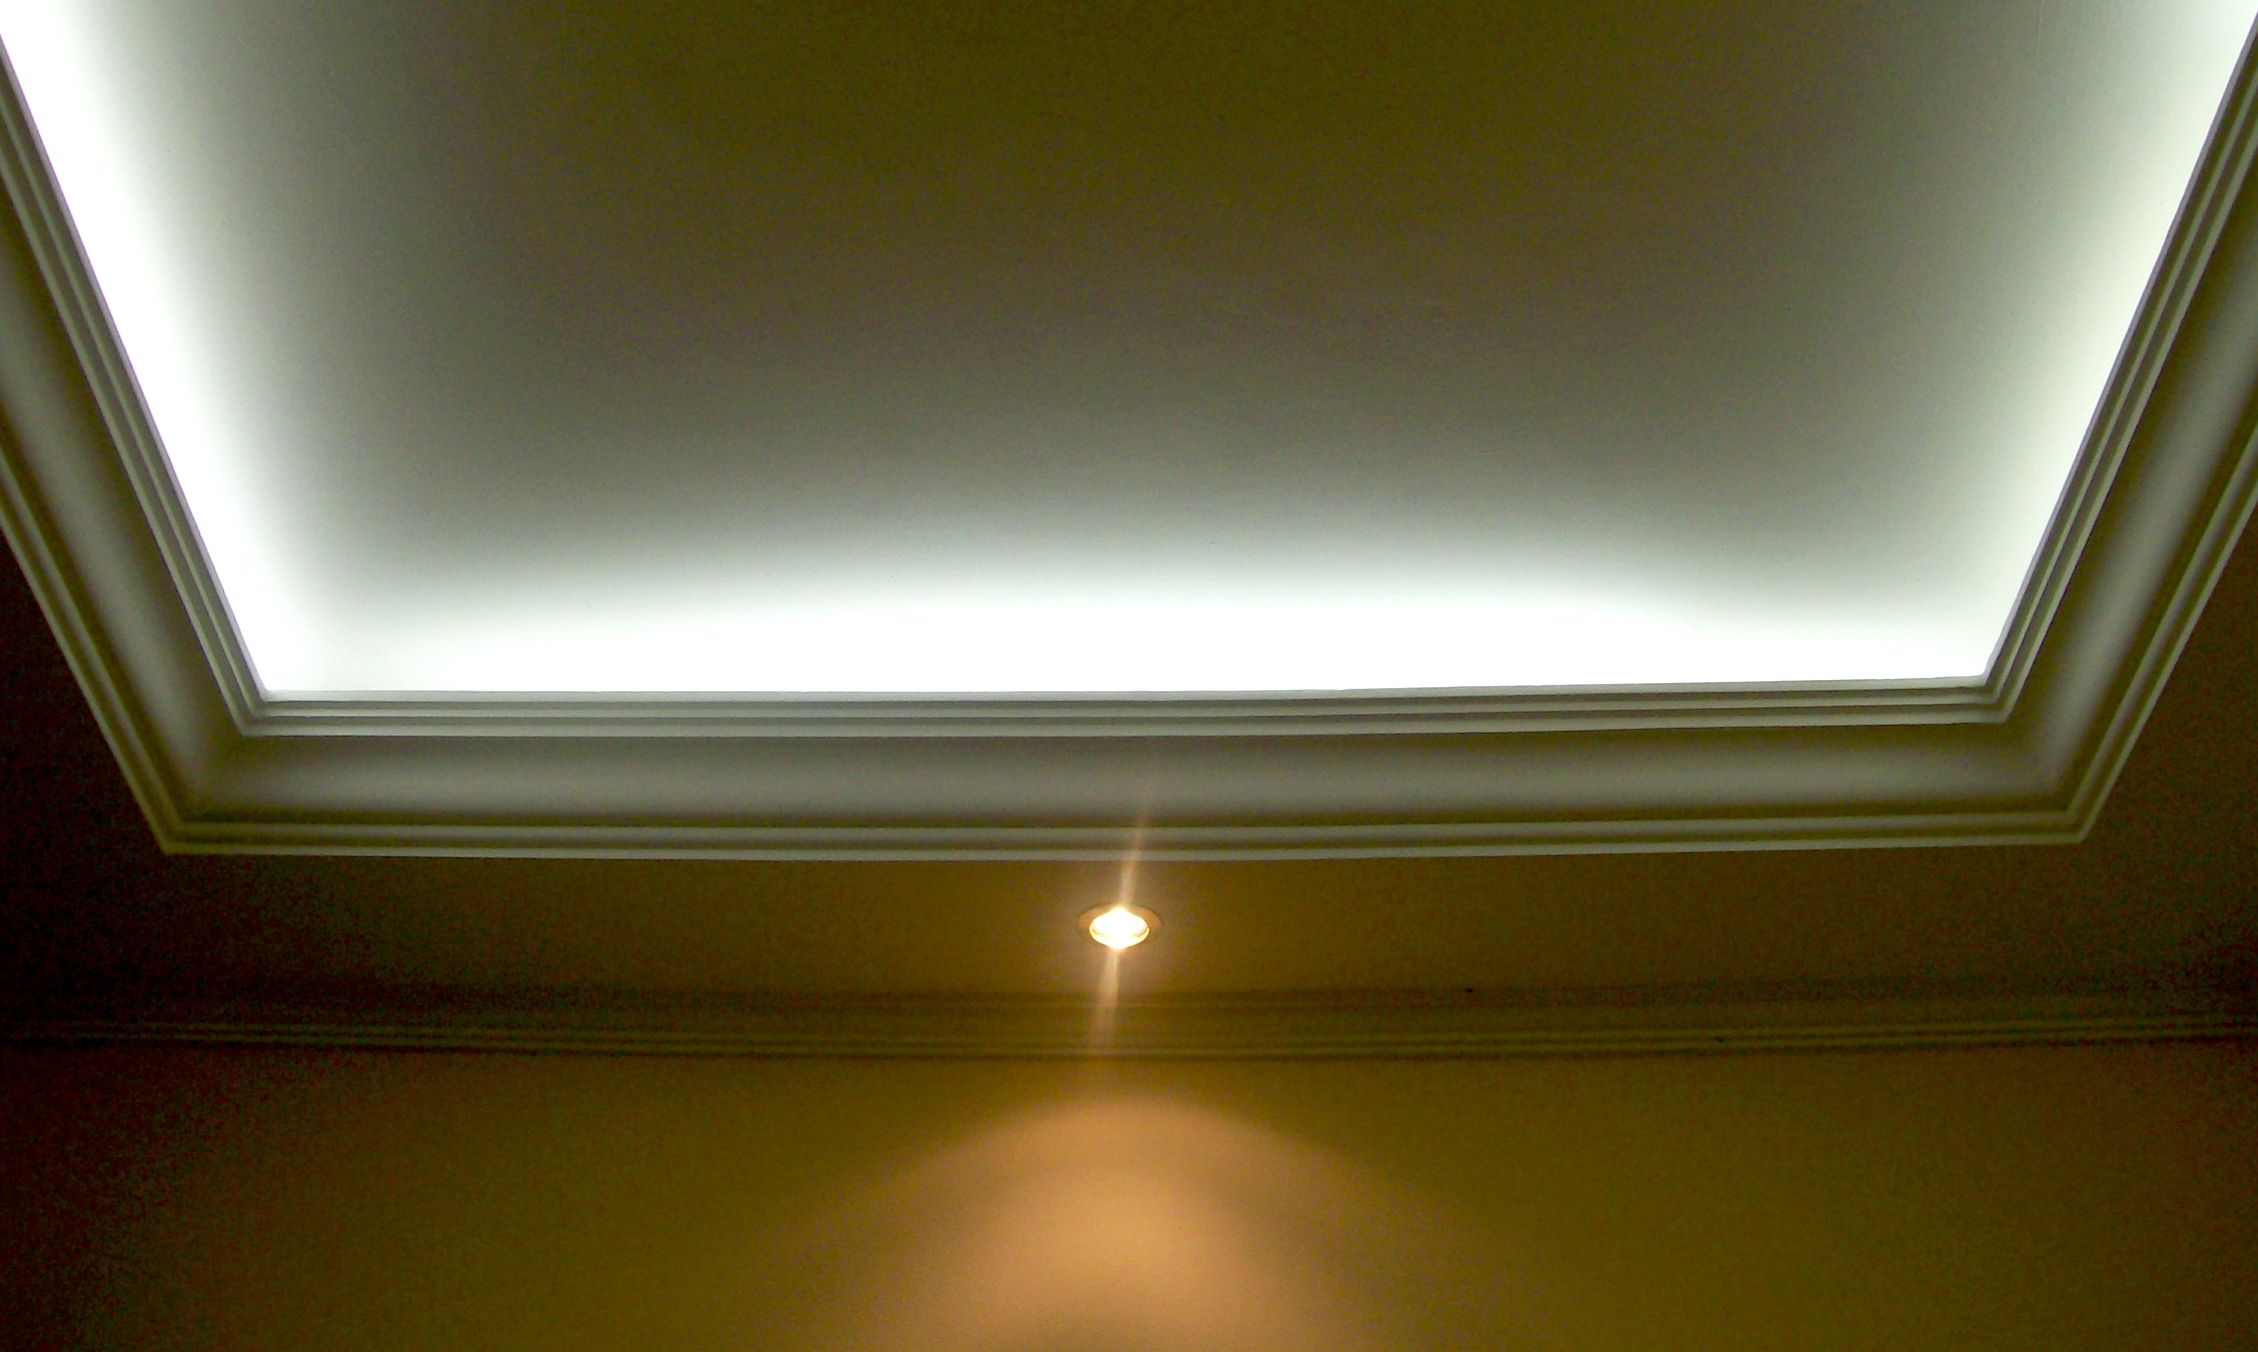 Recessed Lighting Tips : Recessed lighting to show off architectural elements